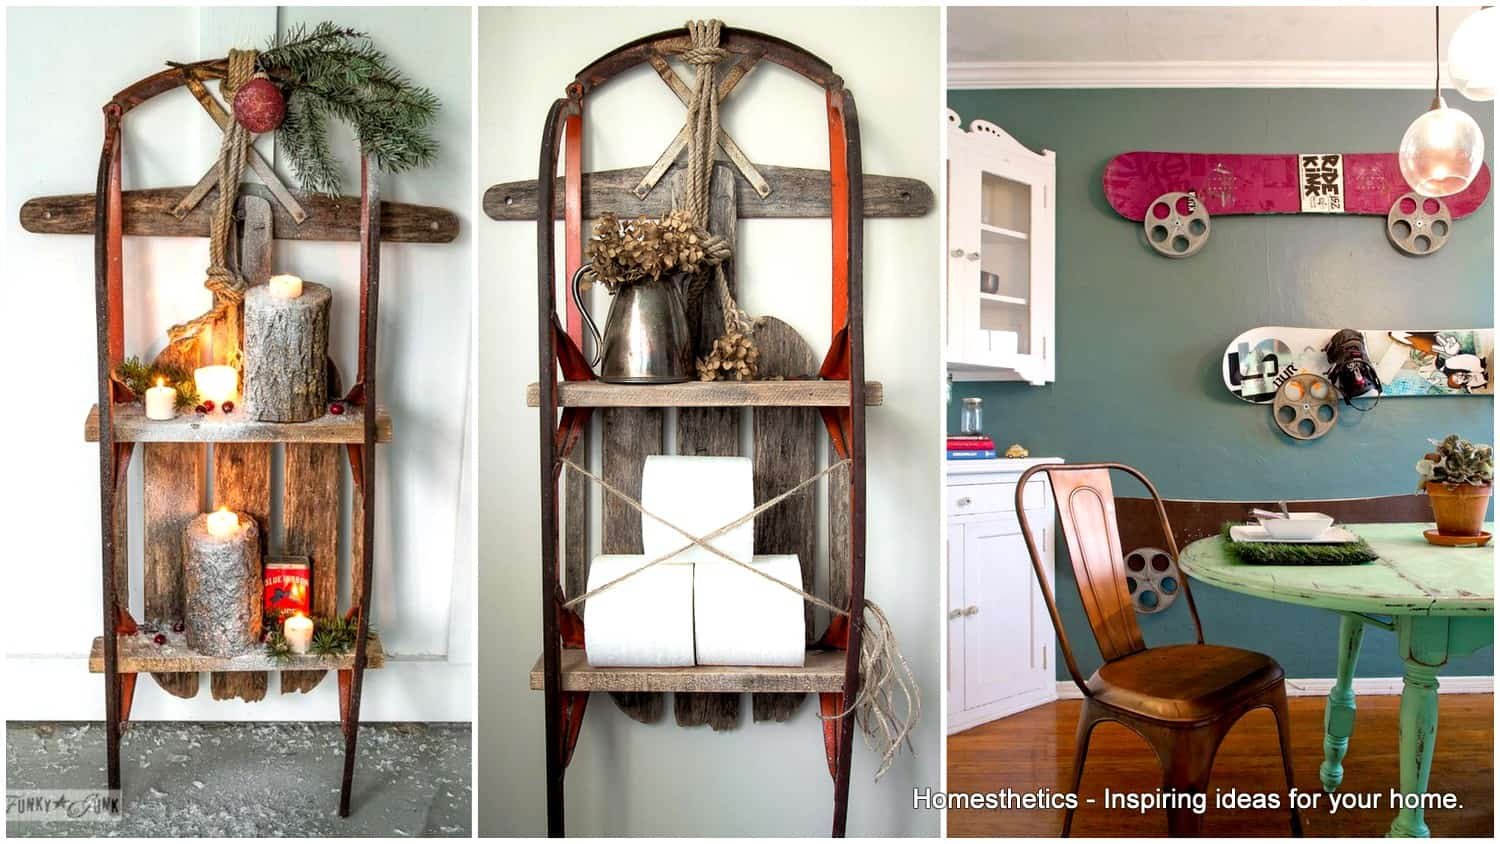 In Home Decorations 19 Winter Home Decorations Re Purposing Sleighs Skis Snowboards